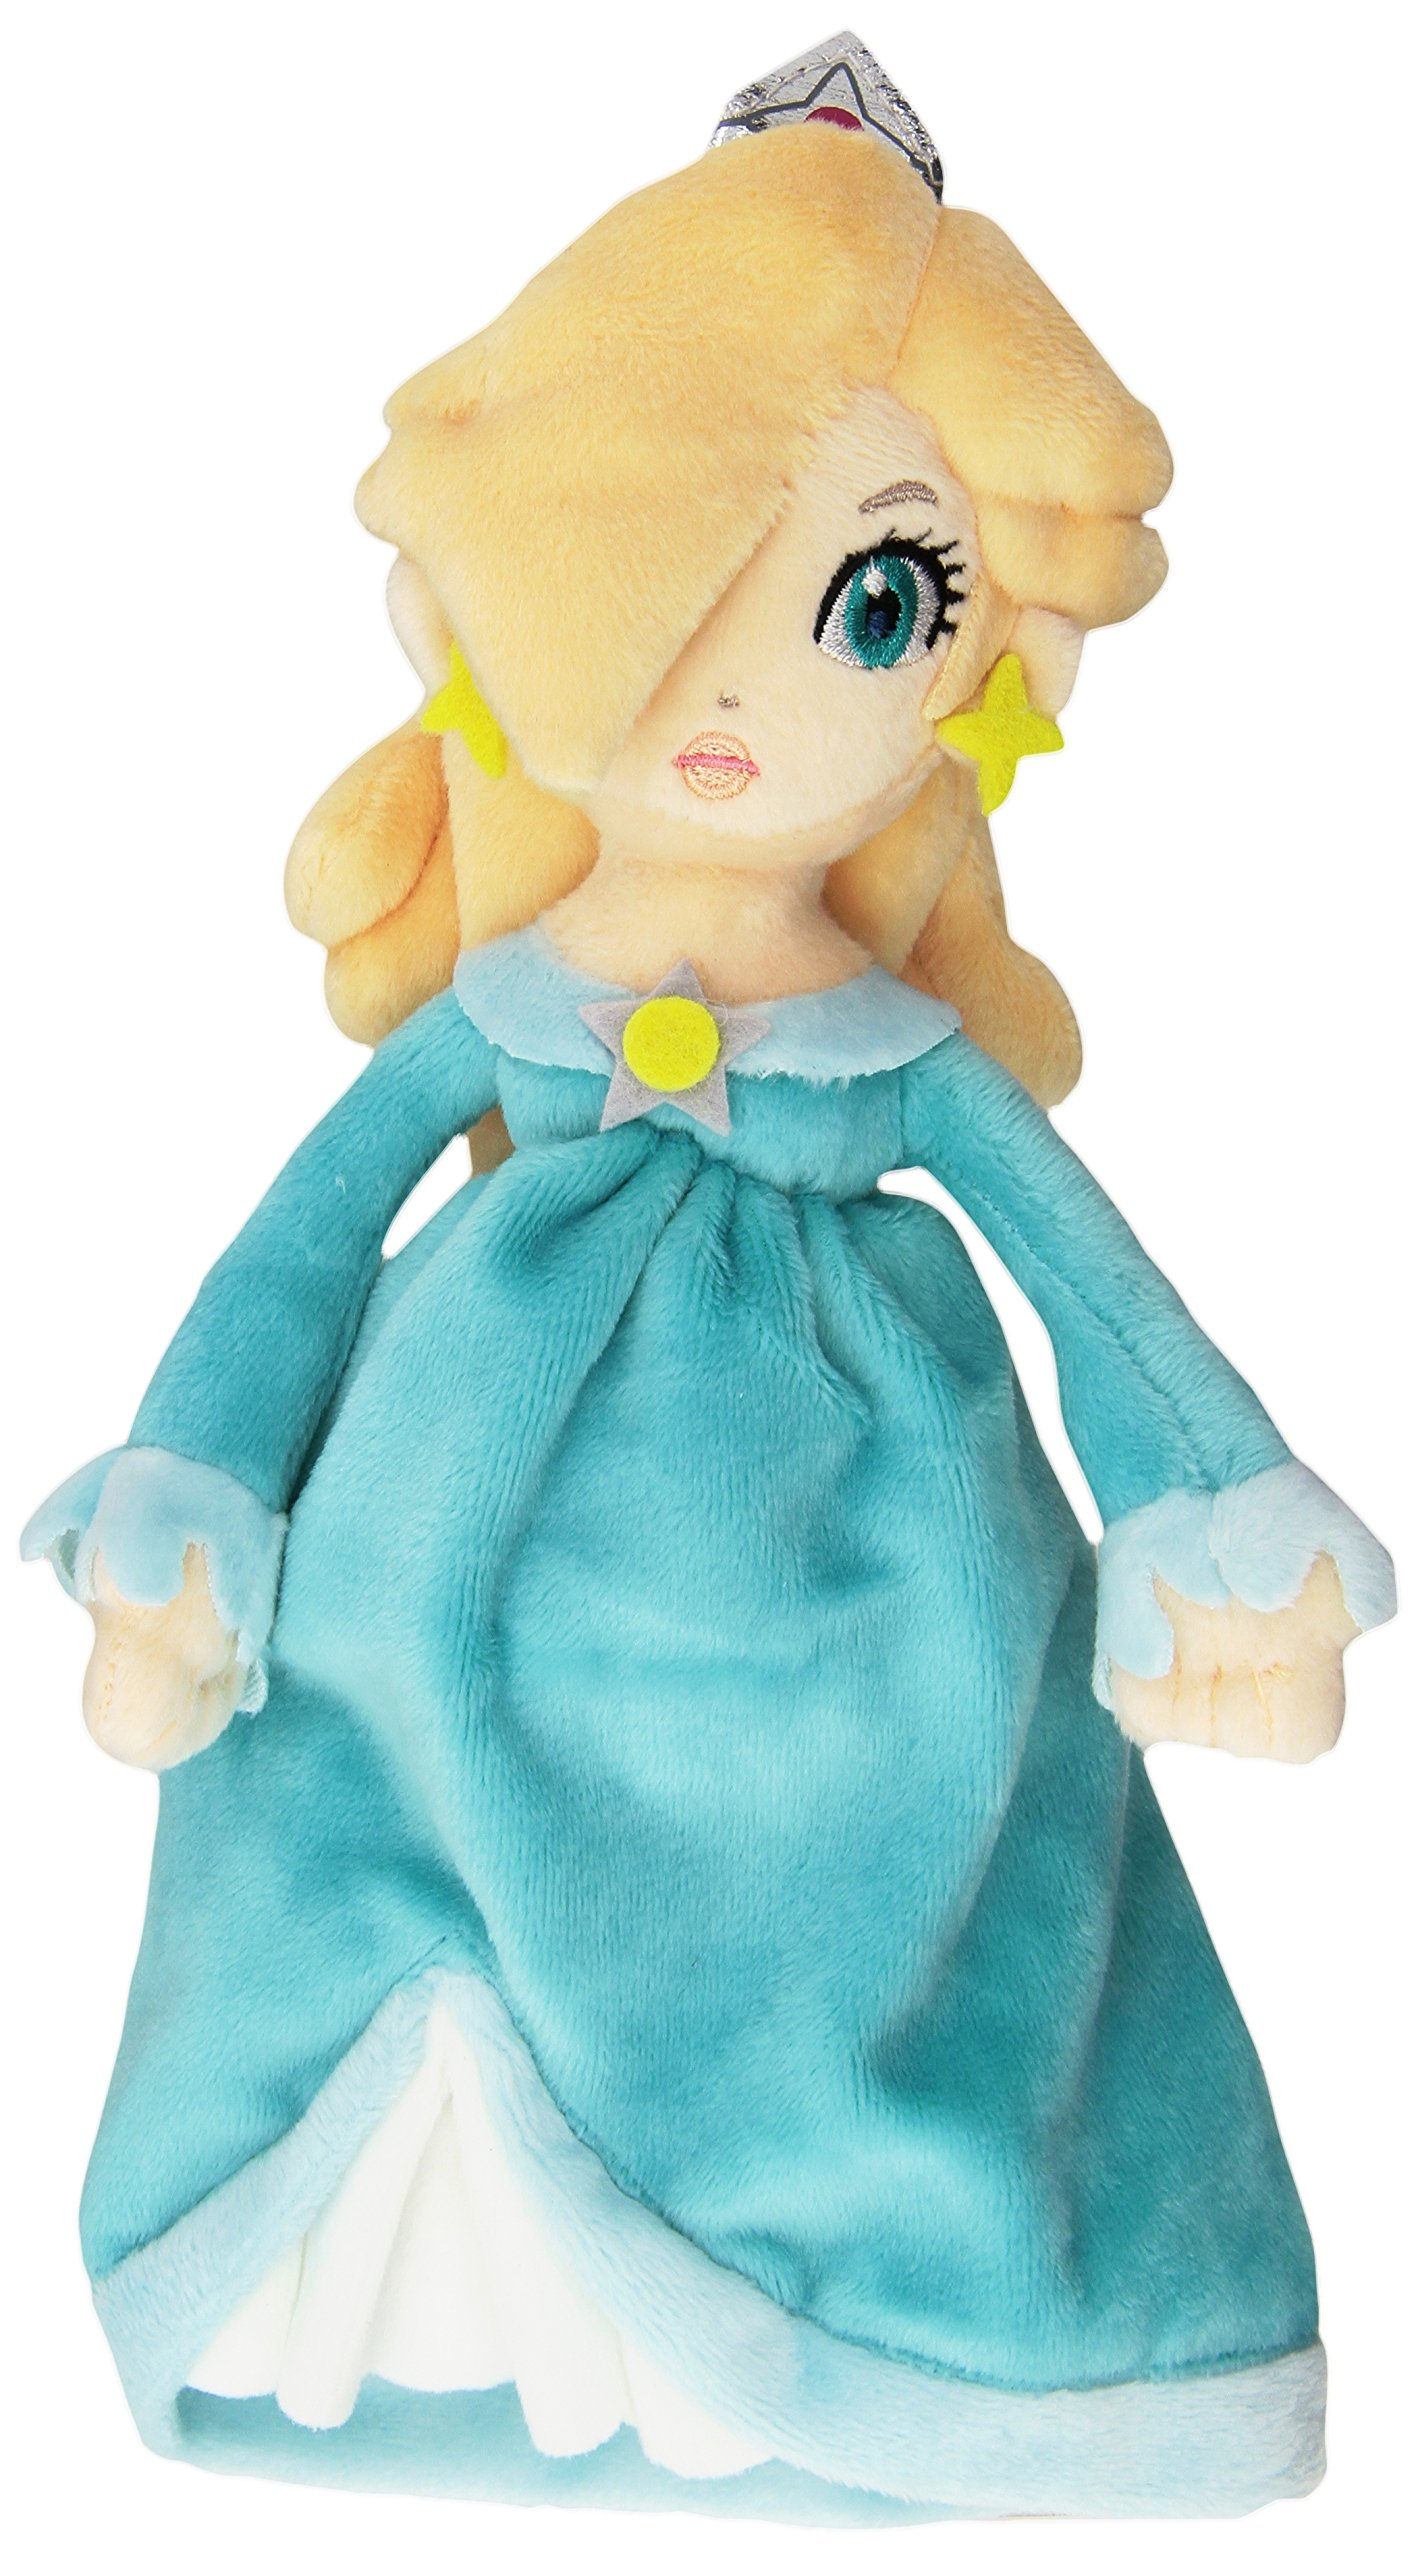 Little Buddy Super Mario Bros. Princess Rosalina Stuffed Plush, 9.5'' by Little Buddy